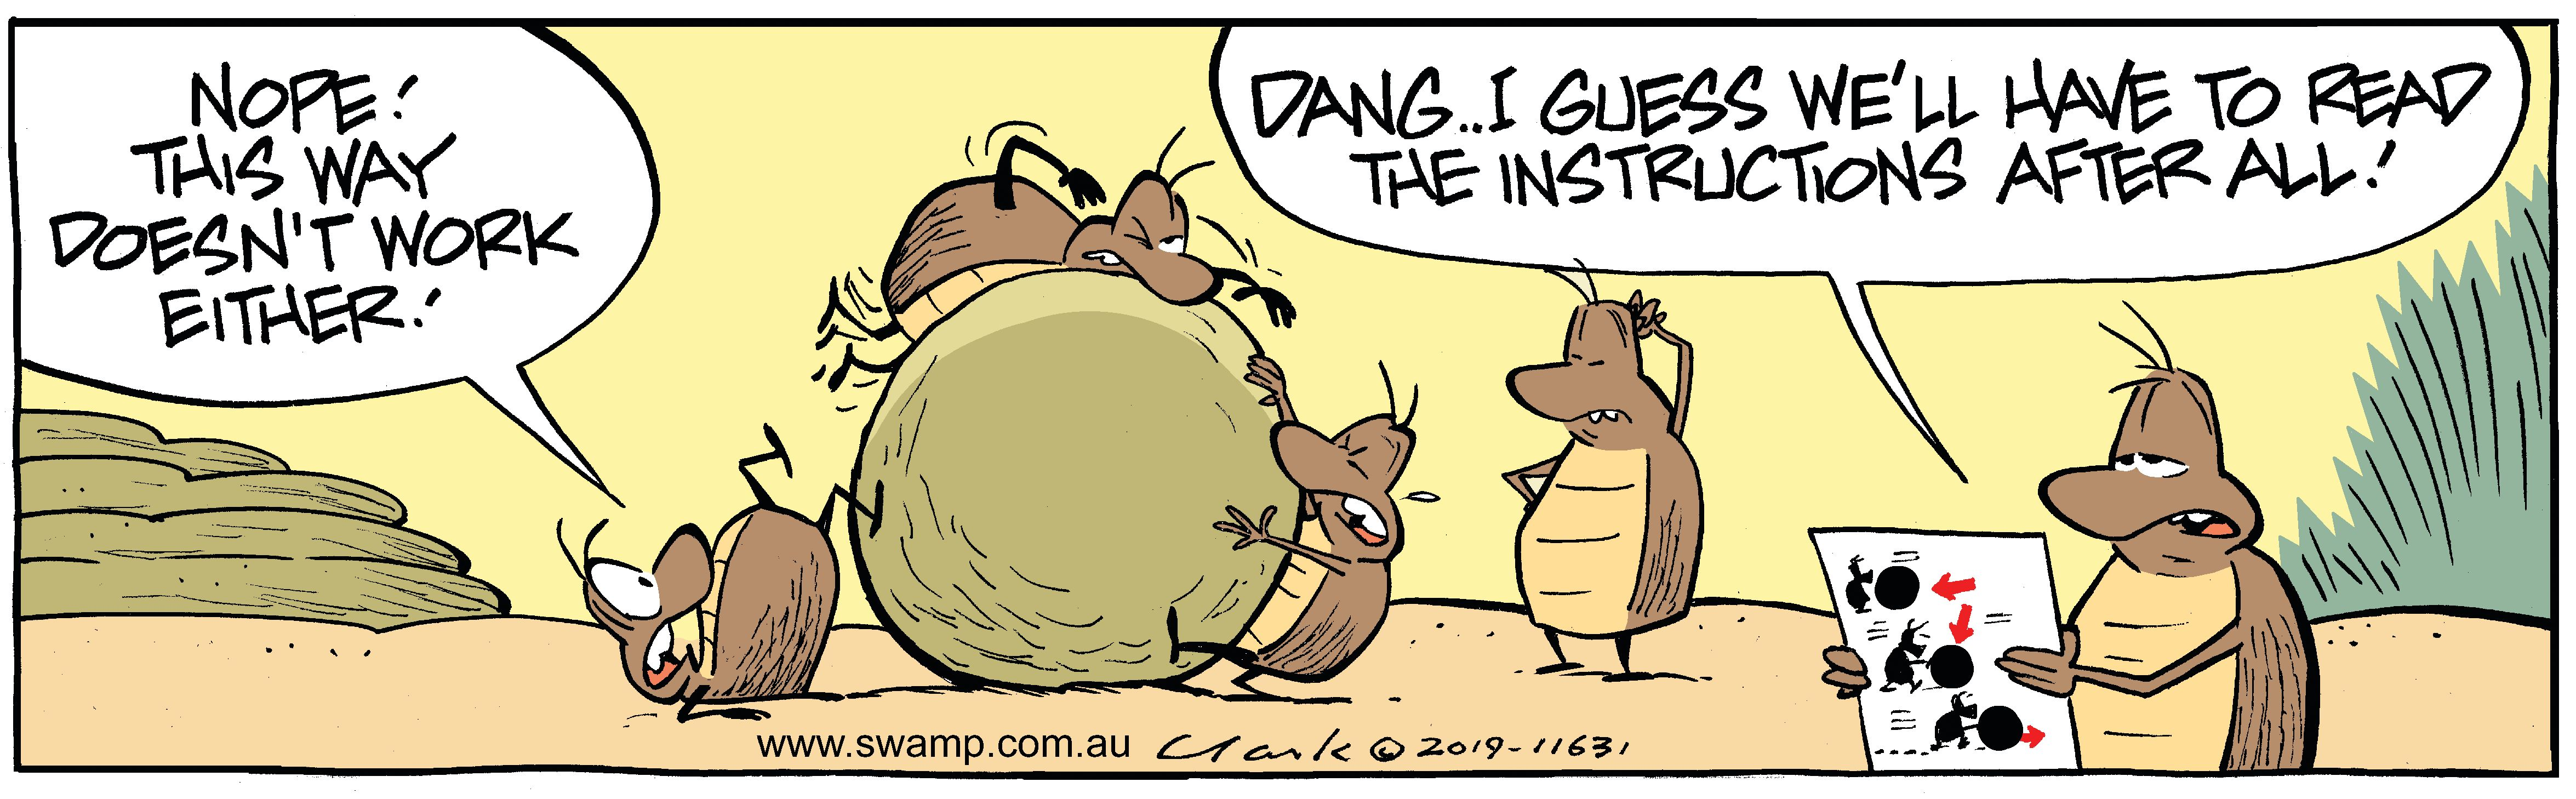 Dung Beetle Instructions Comic